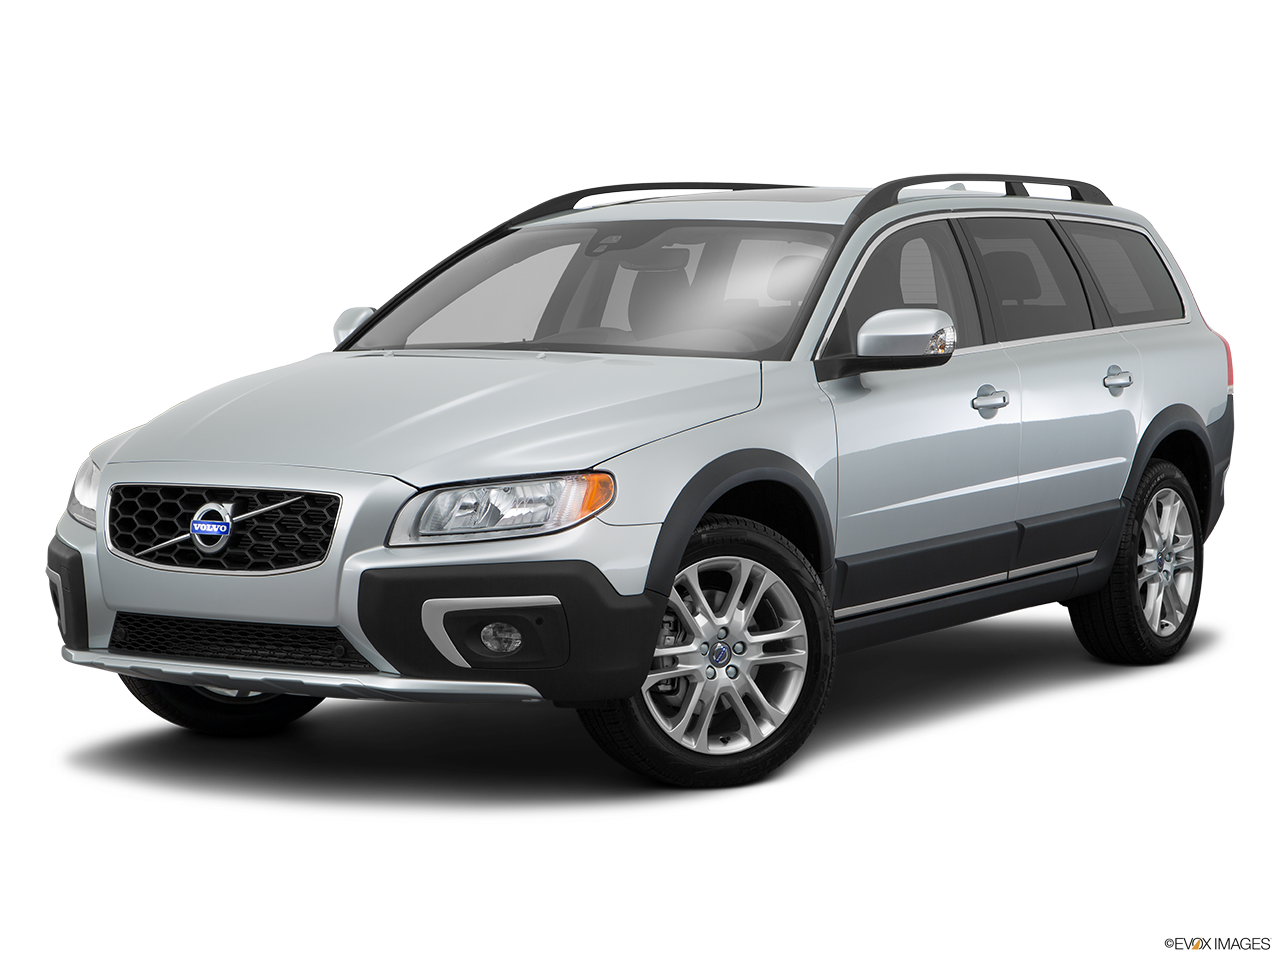 Test Drive A 2016 Volvo XC70 at Galpin Volvo in Los Angeles